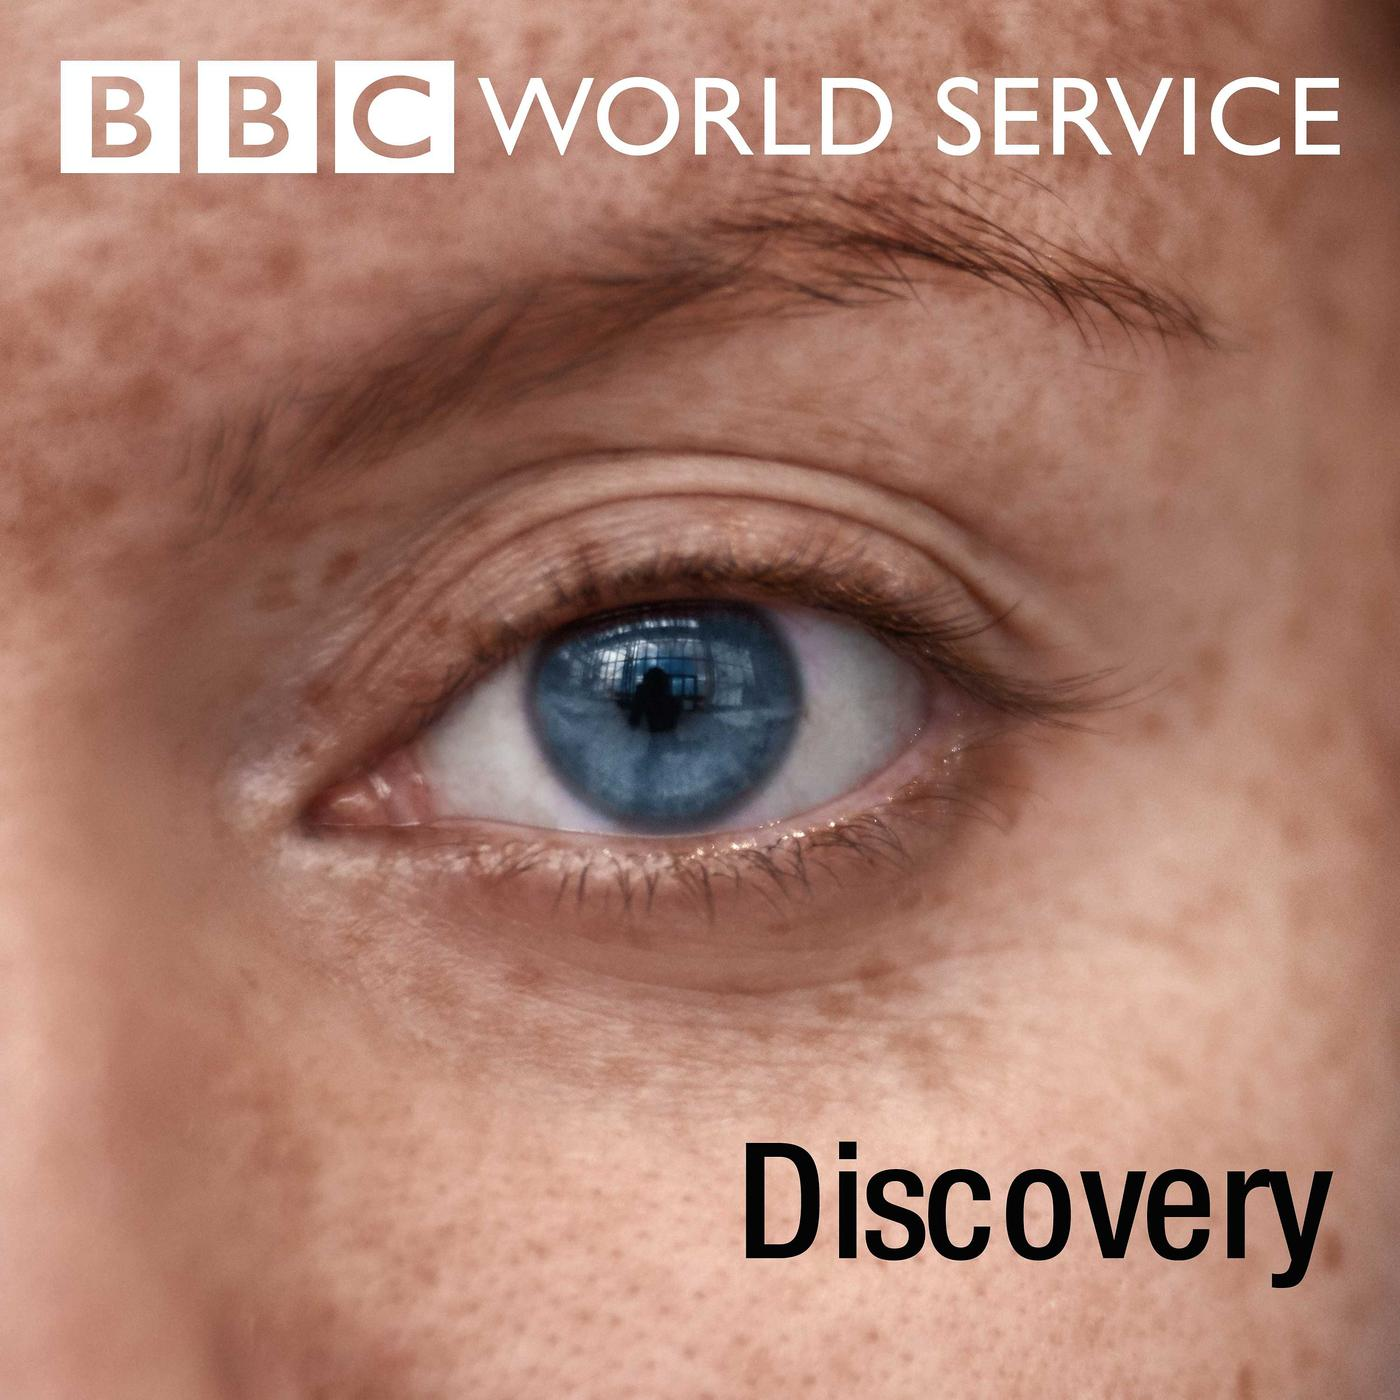 Discovery by BBC podcast logo